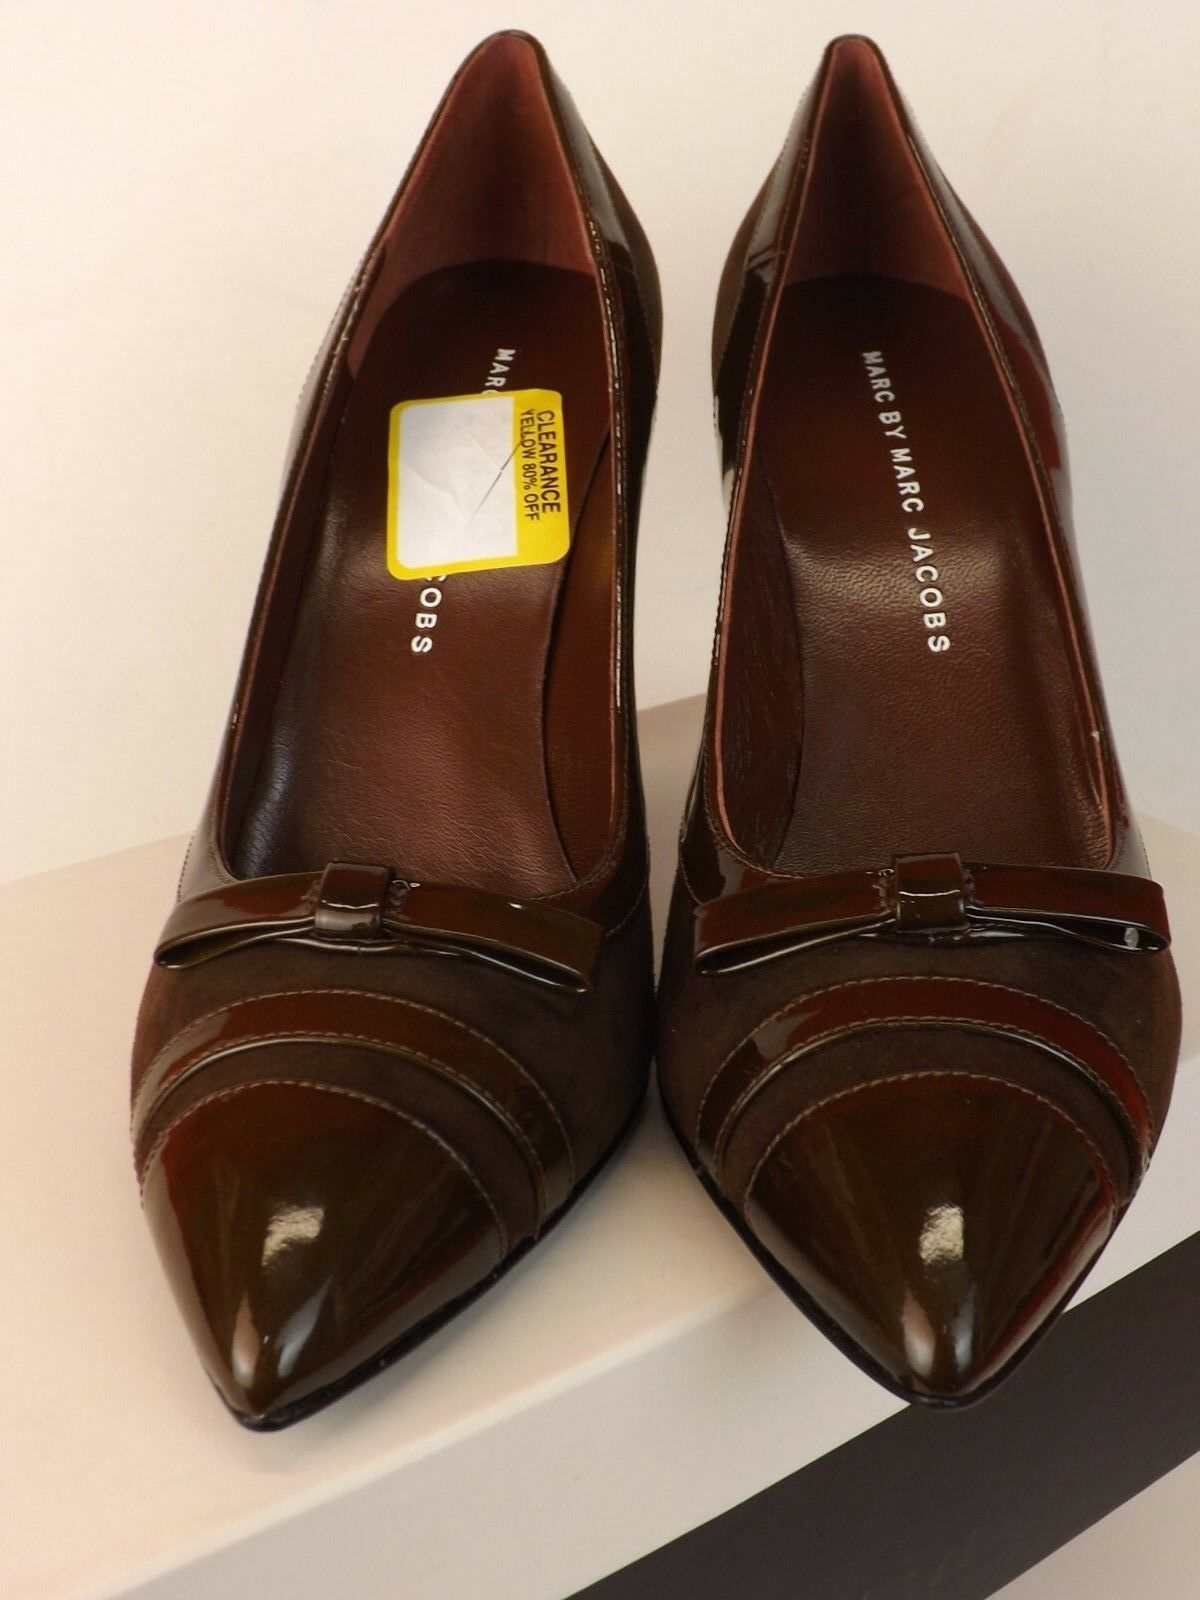 NIB MARC MARC BY MARC MARC JACOBS BROWN SUEDE PATENT LEATHER BOW POINTY TOE PUMPS 38  395 5a4b0f